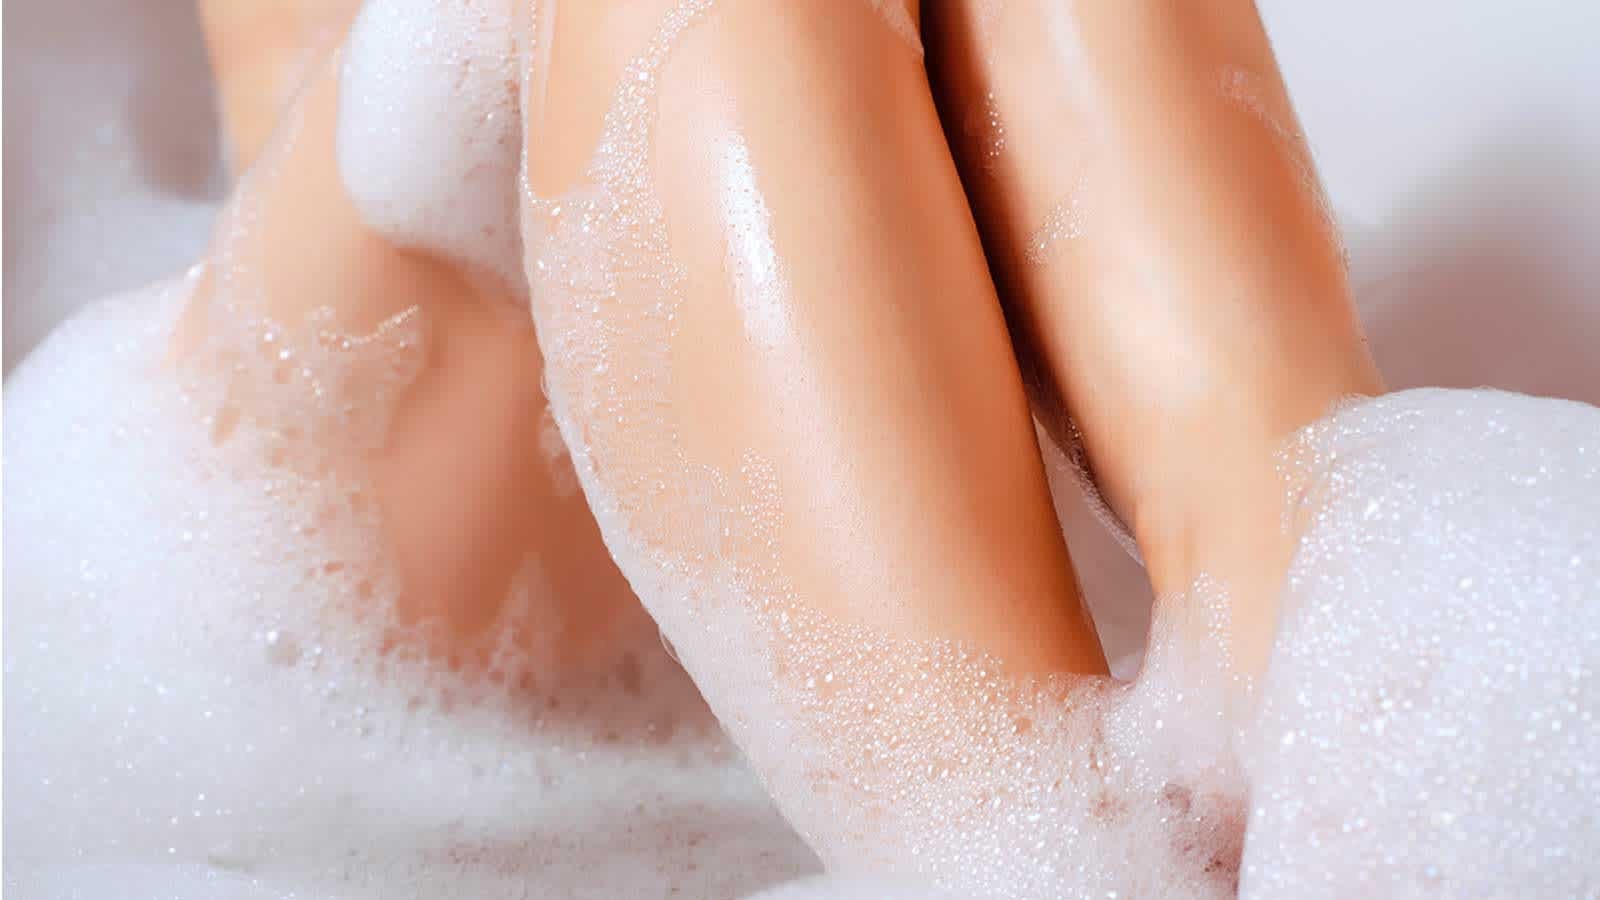 Hydrate and Wash Your Pubic Area Before Shaving